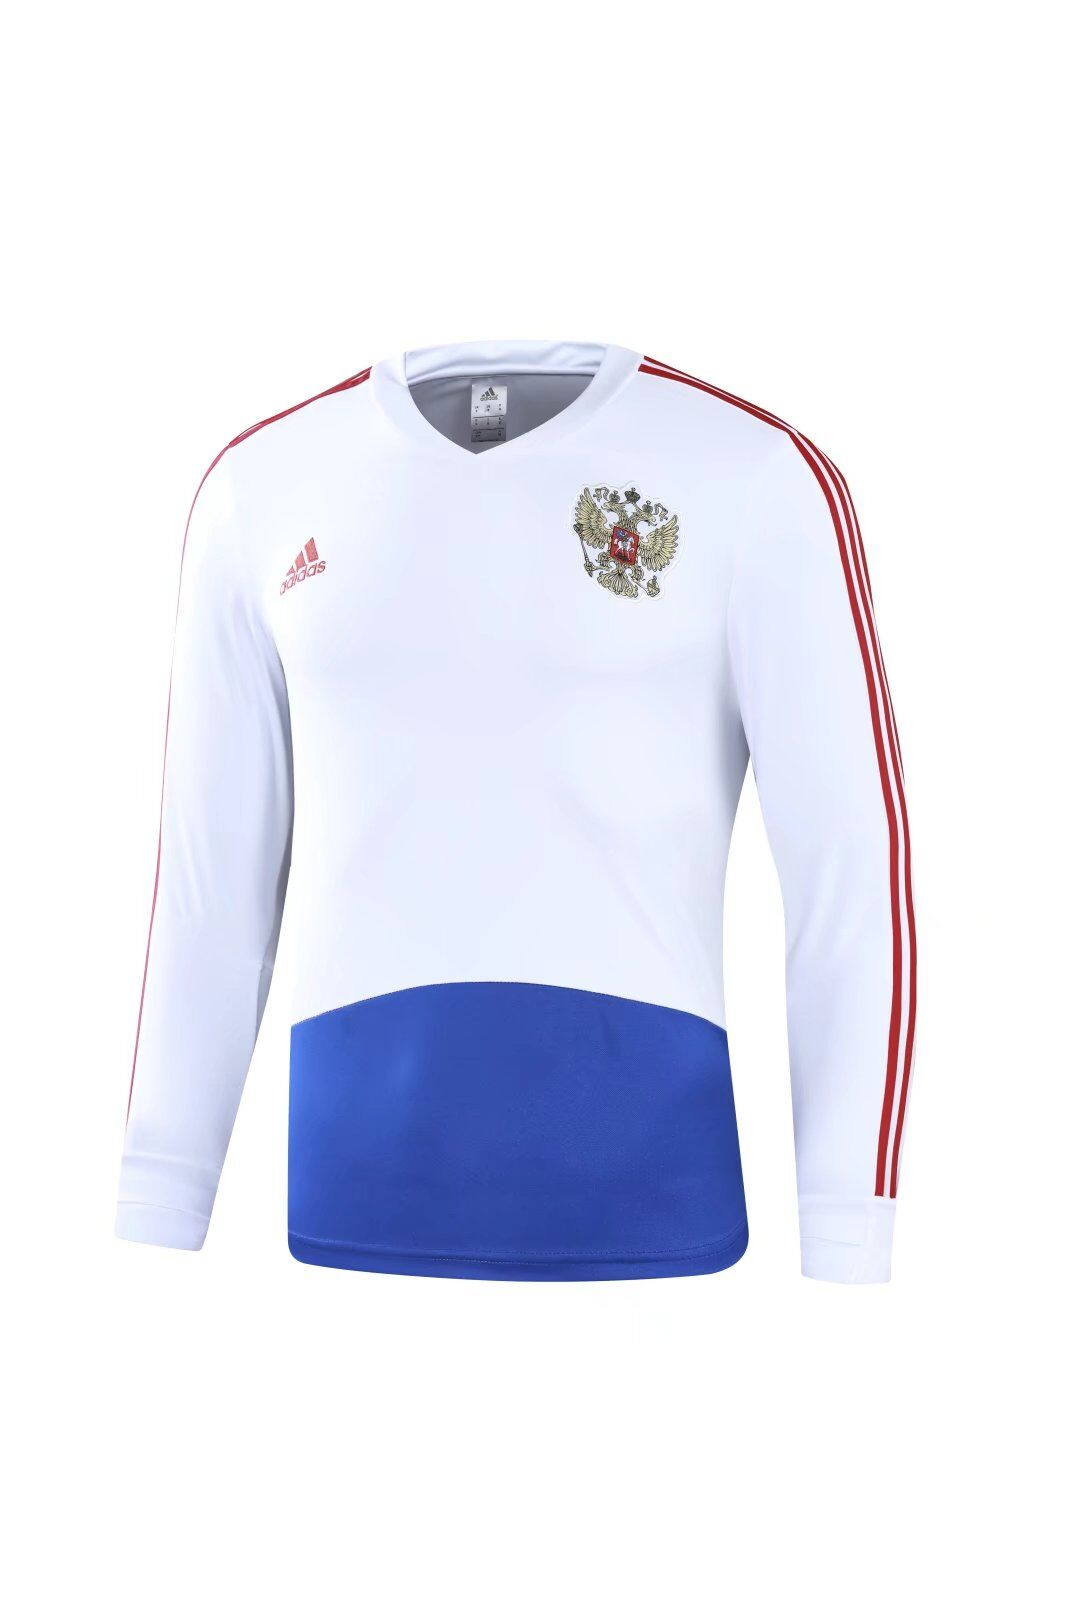 Russia Sweat Shirt Top White World Cup 2018